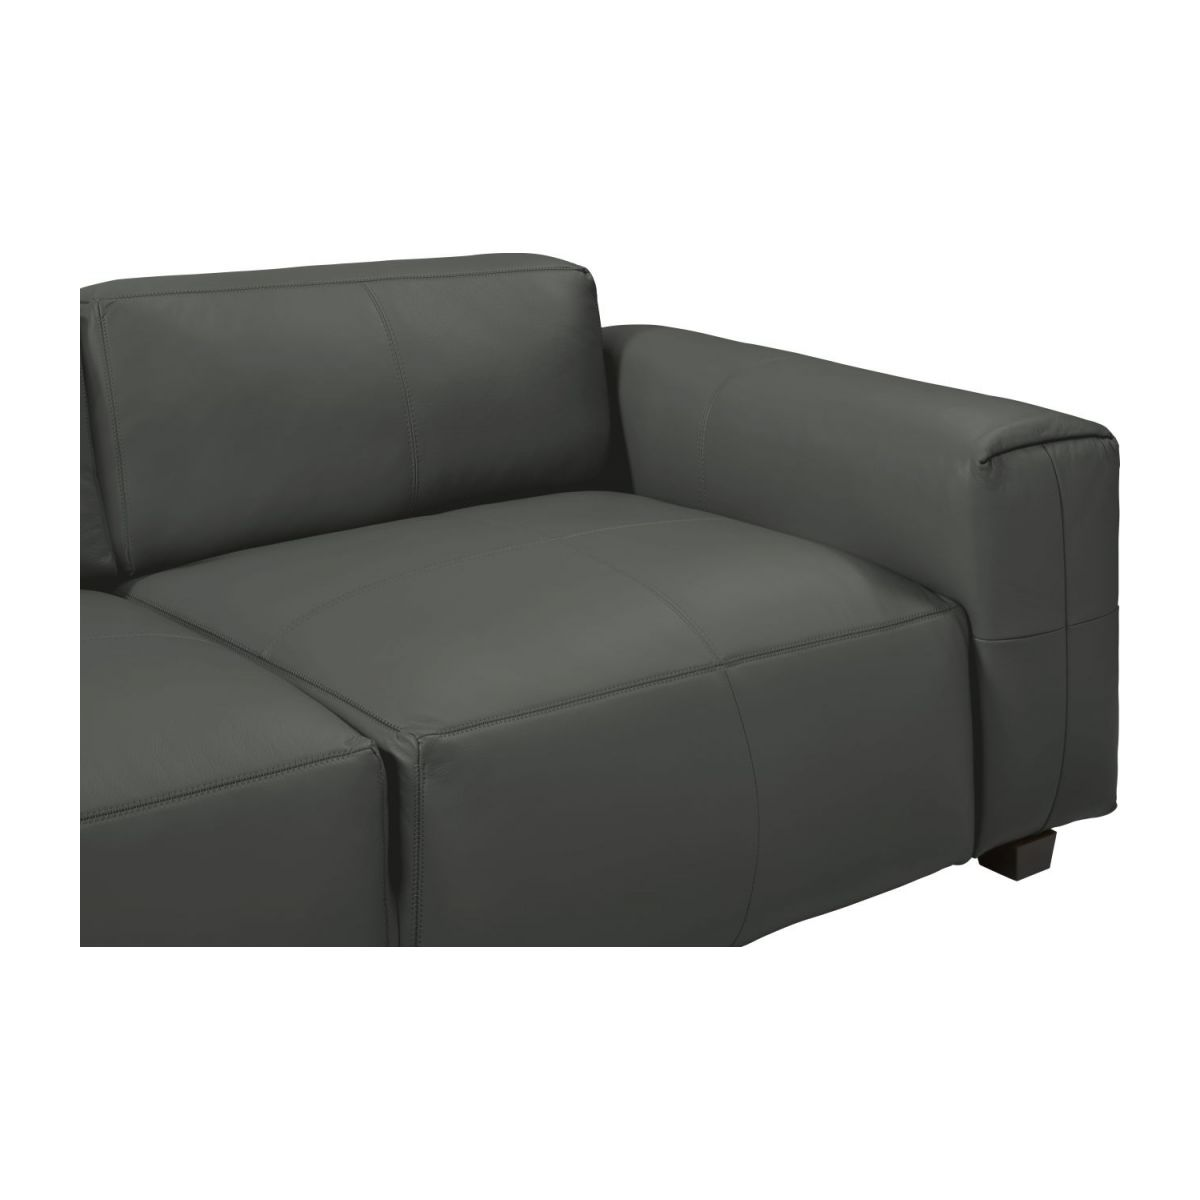 4 seater sofa in Savoy semi-aniline leather, grey n°6